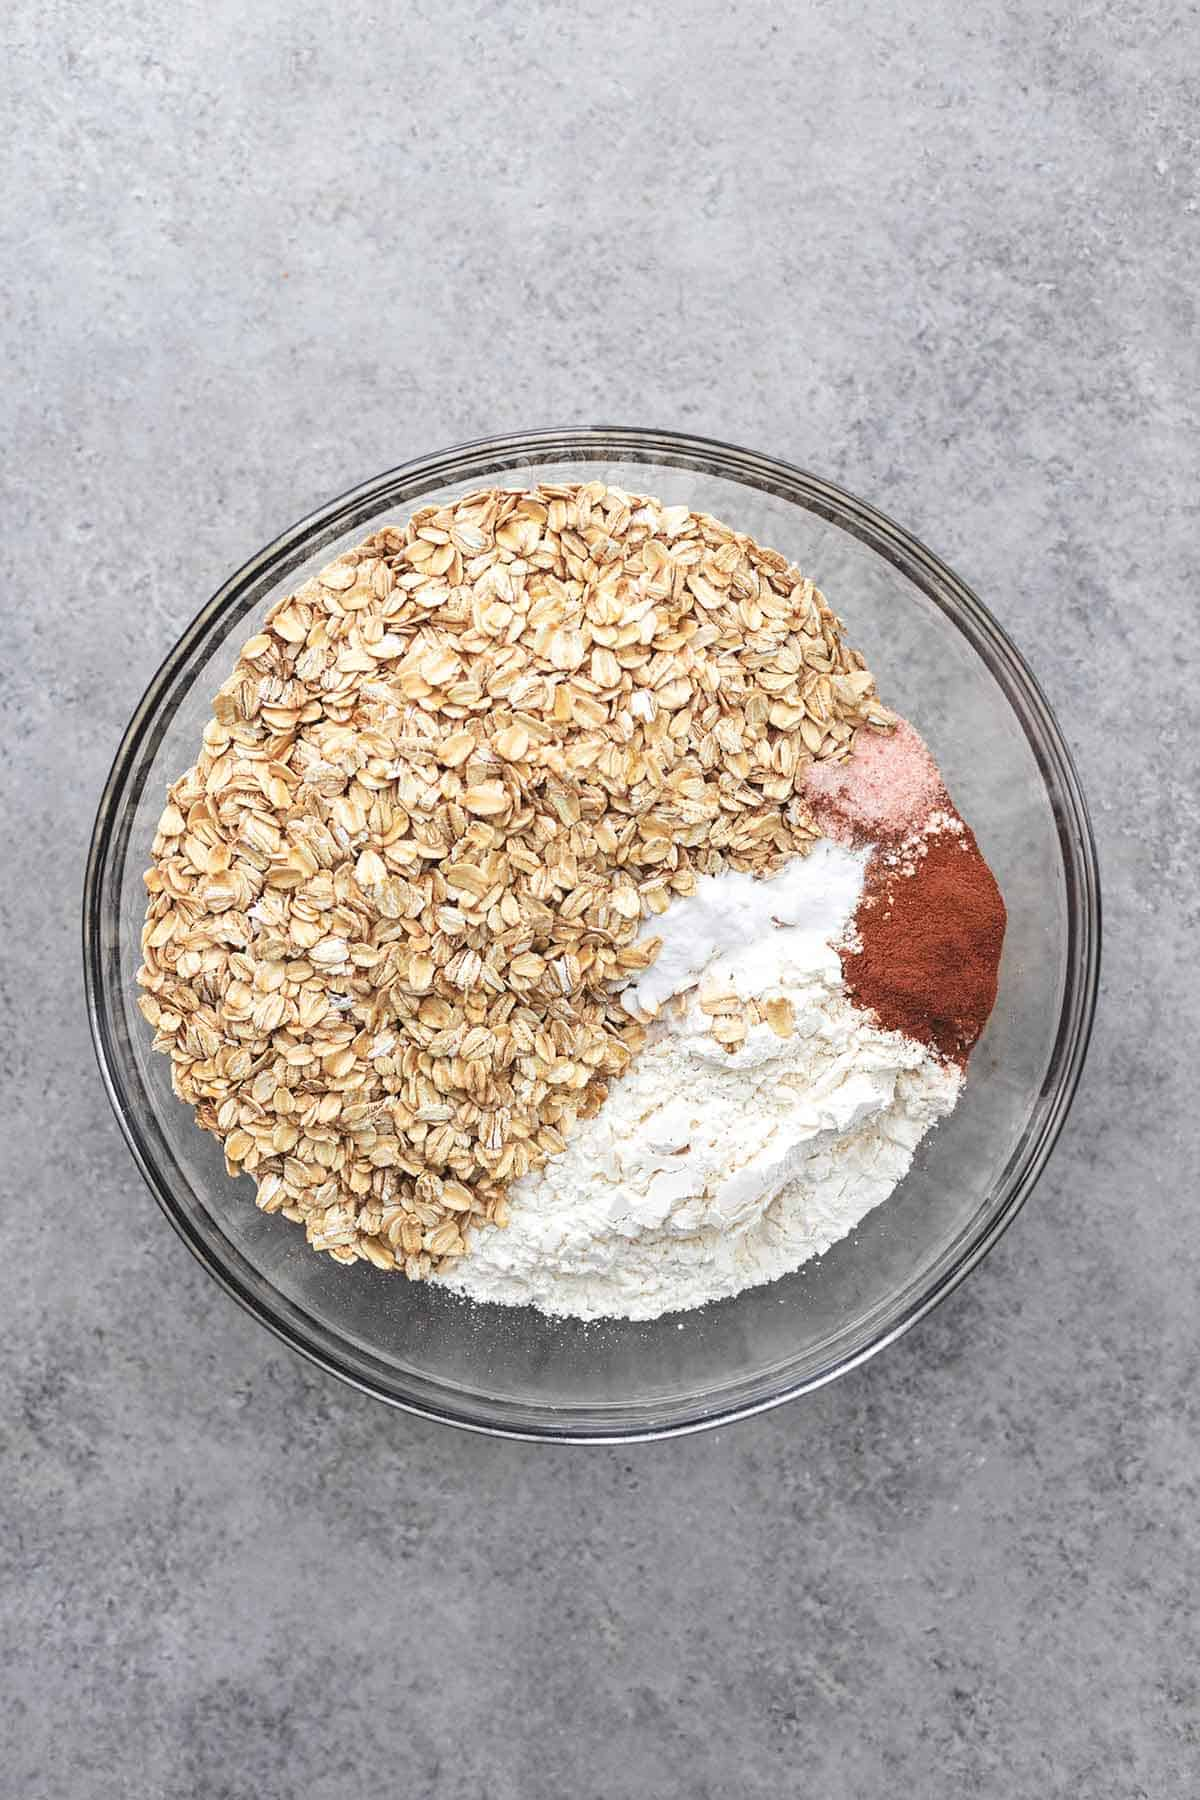 oats, flour, salt, and spices in a glass bowl